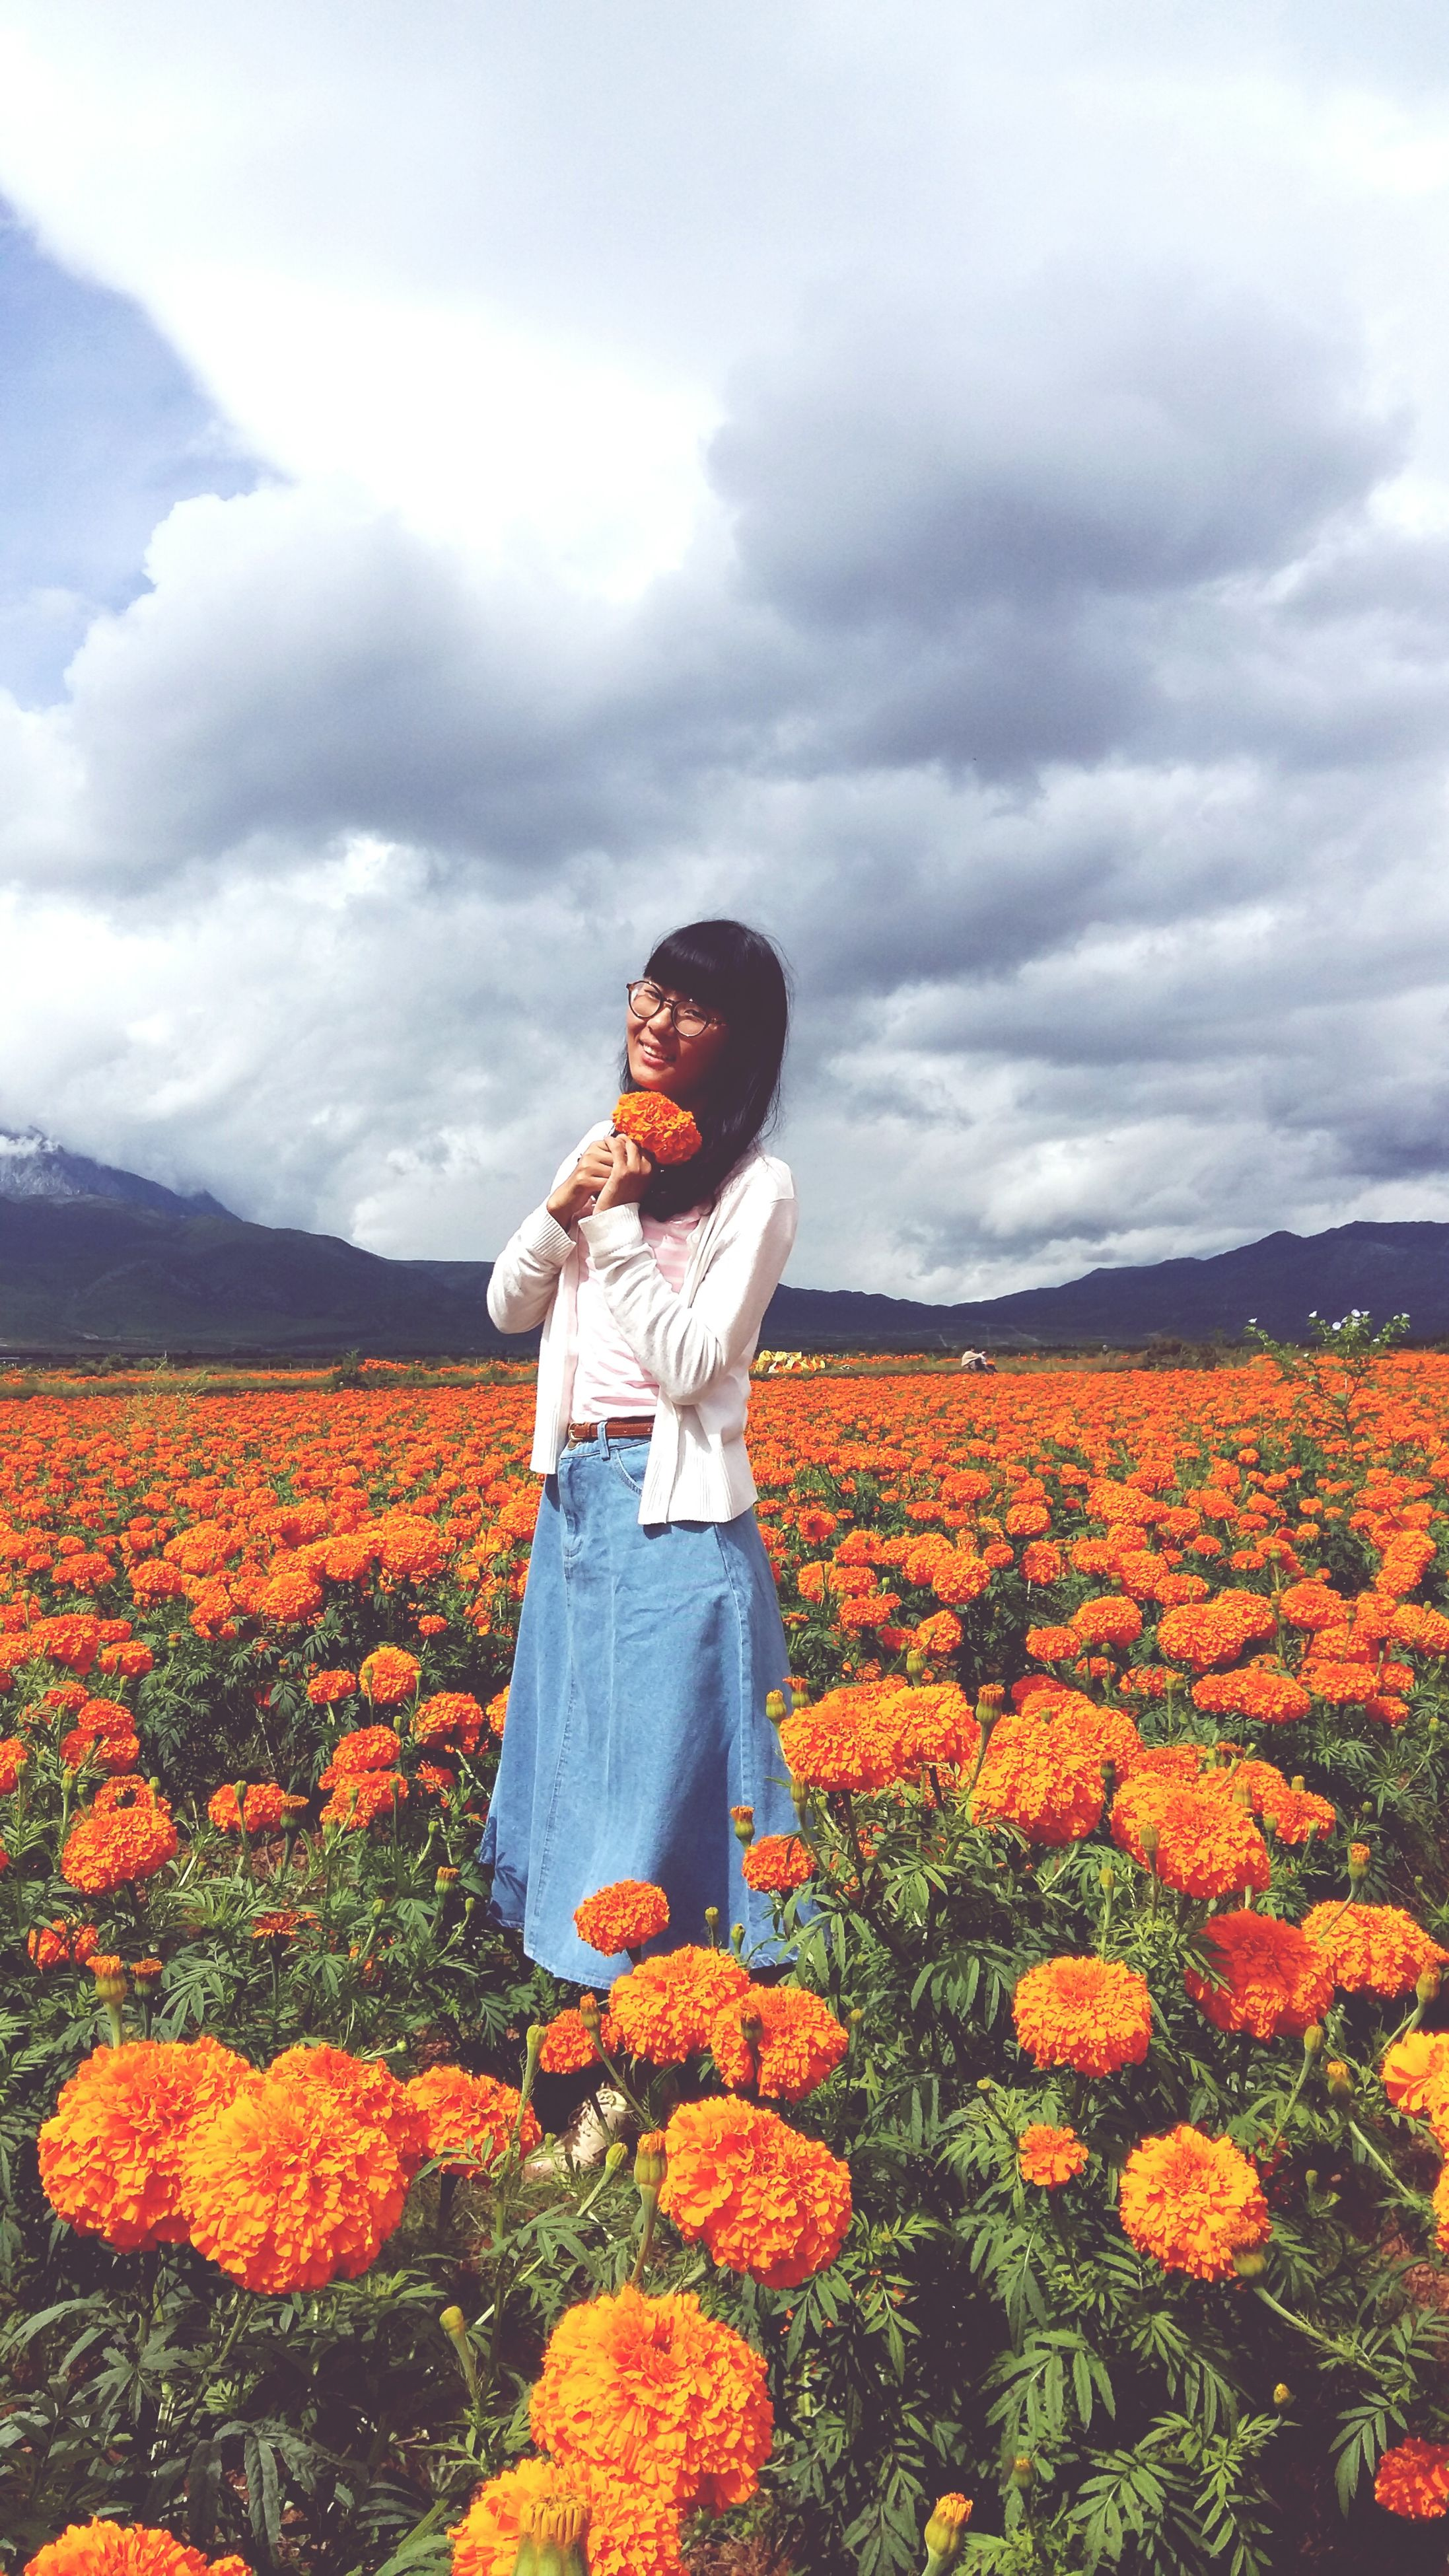 flower, sky, beauty in nature, cloud - sky, field, freshness, yellow, nature, growth, standing, plant, mountain, landscape, lifestyles, rural scene, agriculture, orange color, tranquility